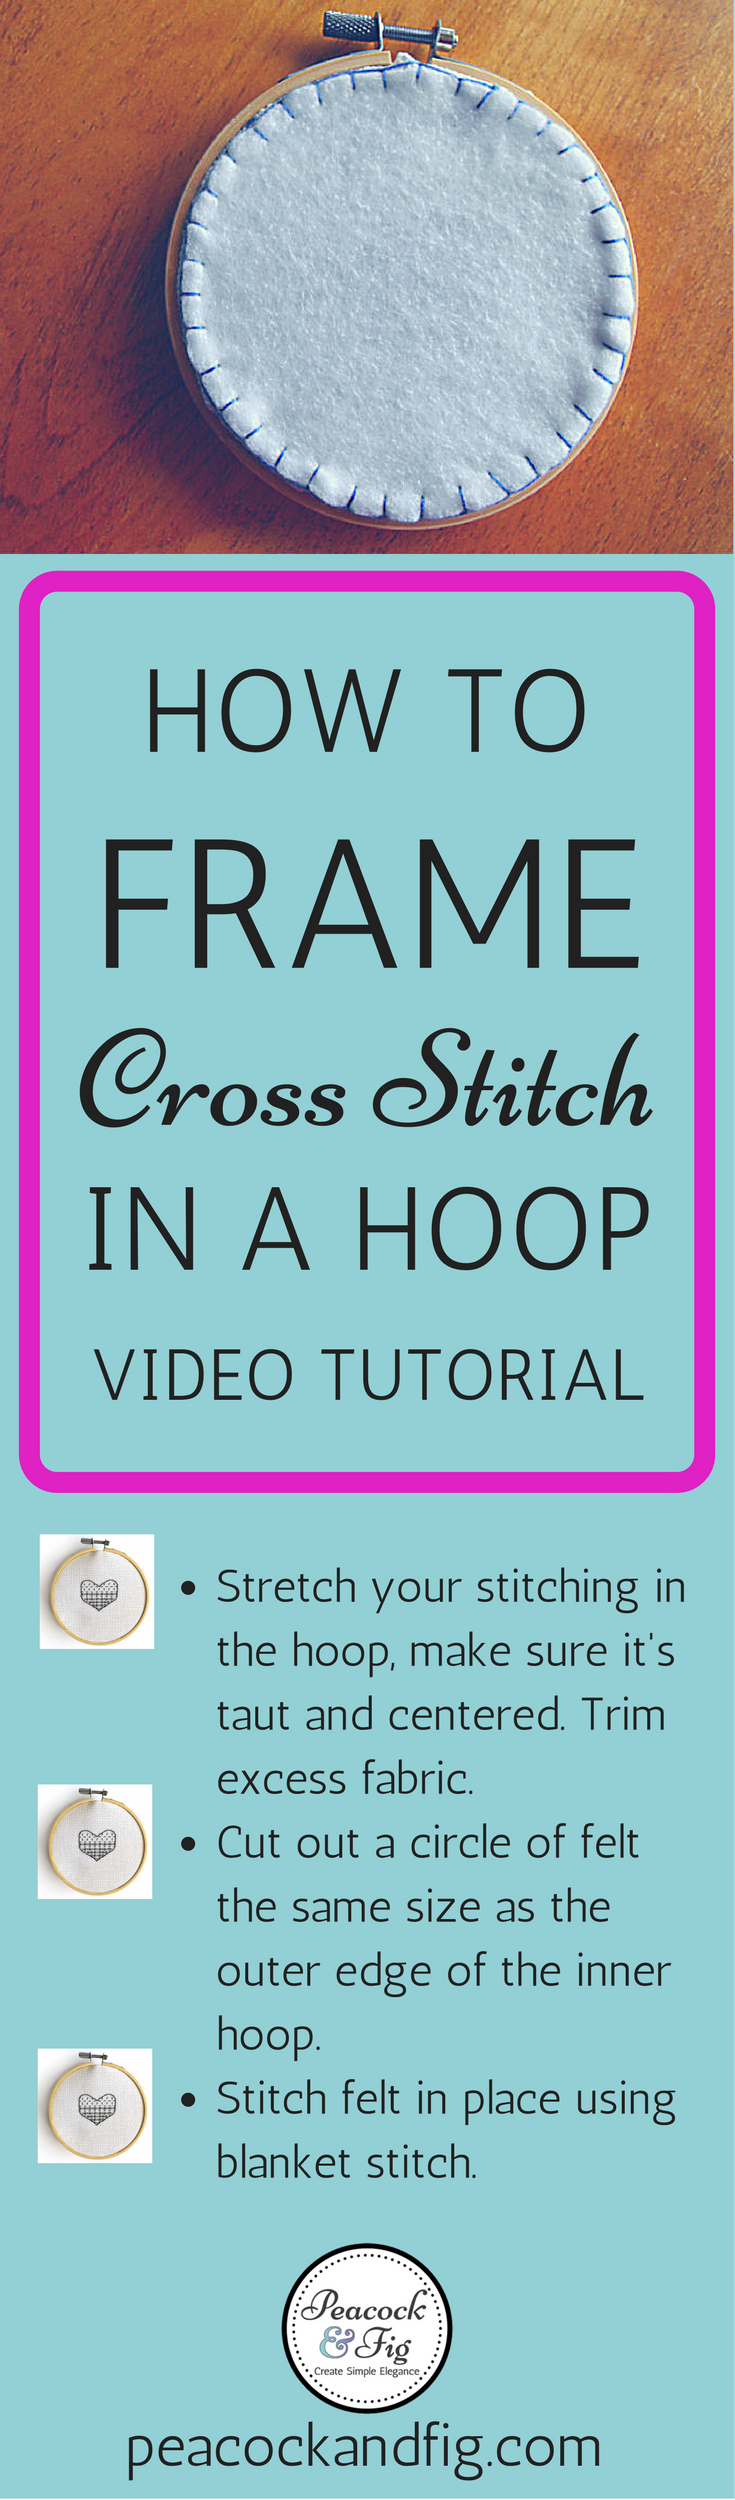 How to frame cross stitch in an embroidery hoop | Free cross stitch ...